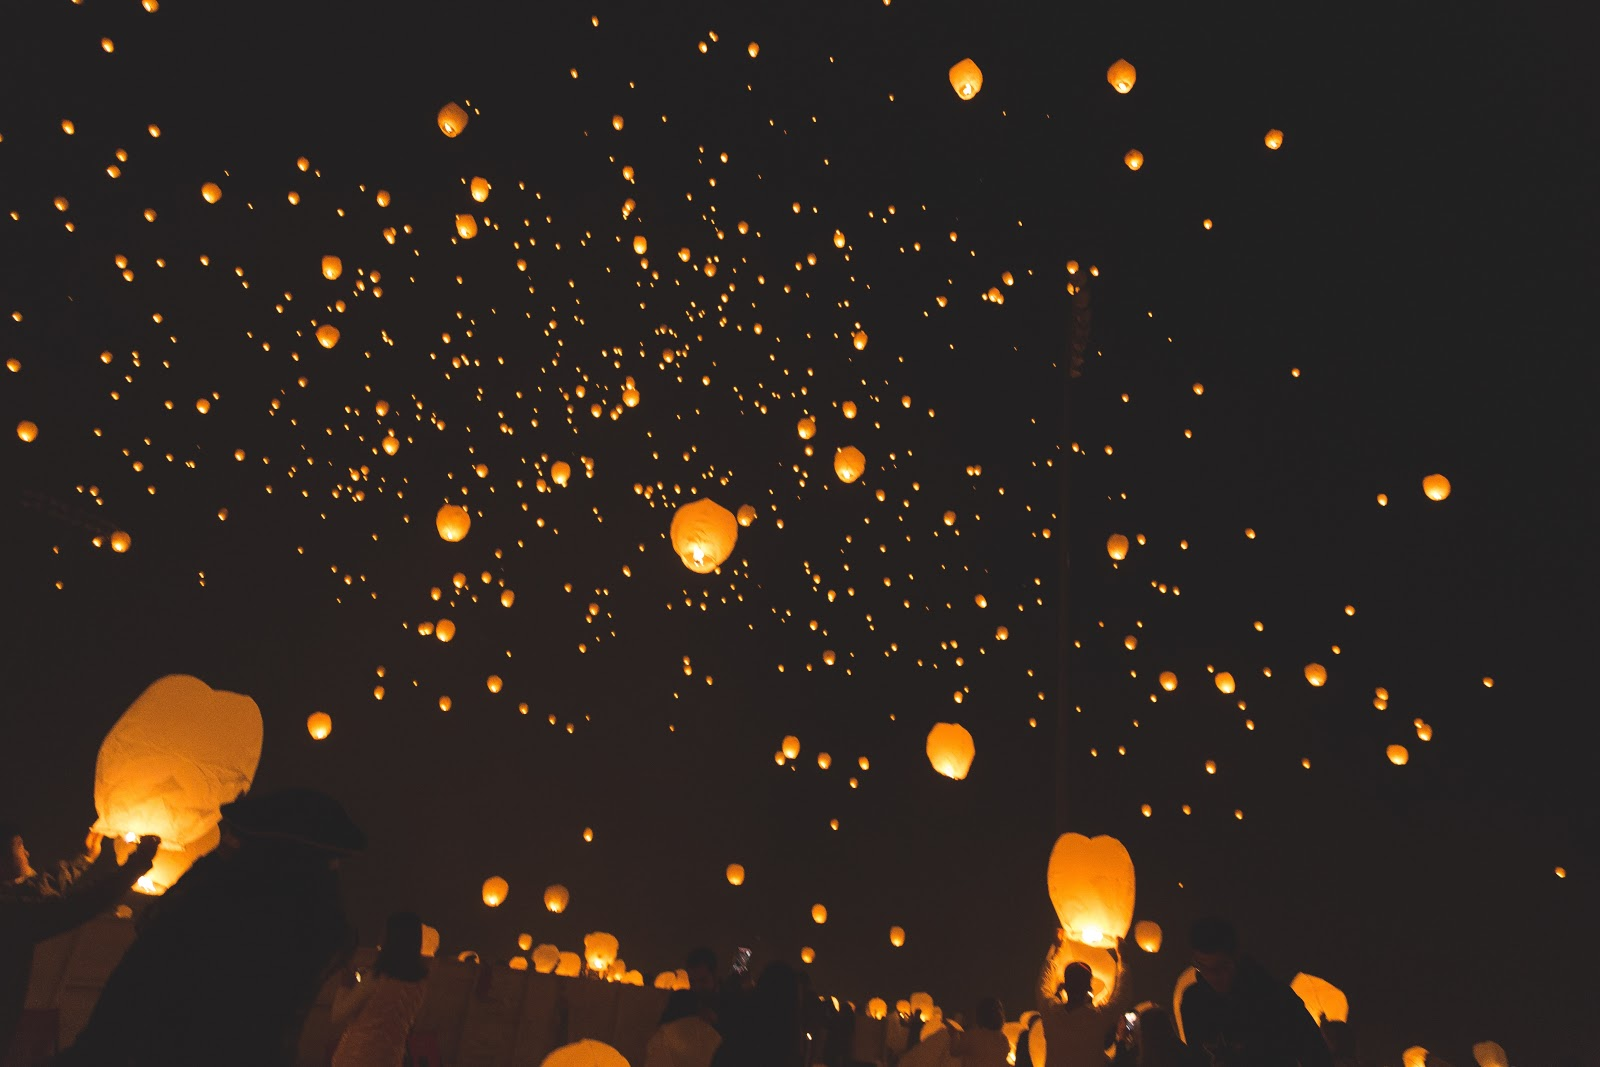 Releasing lanterns into the sky